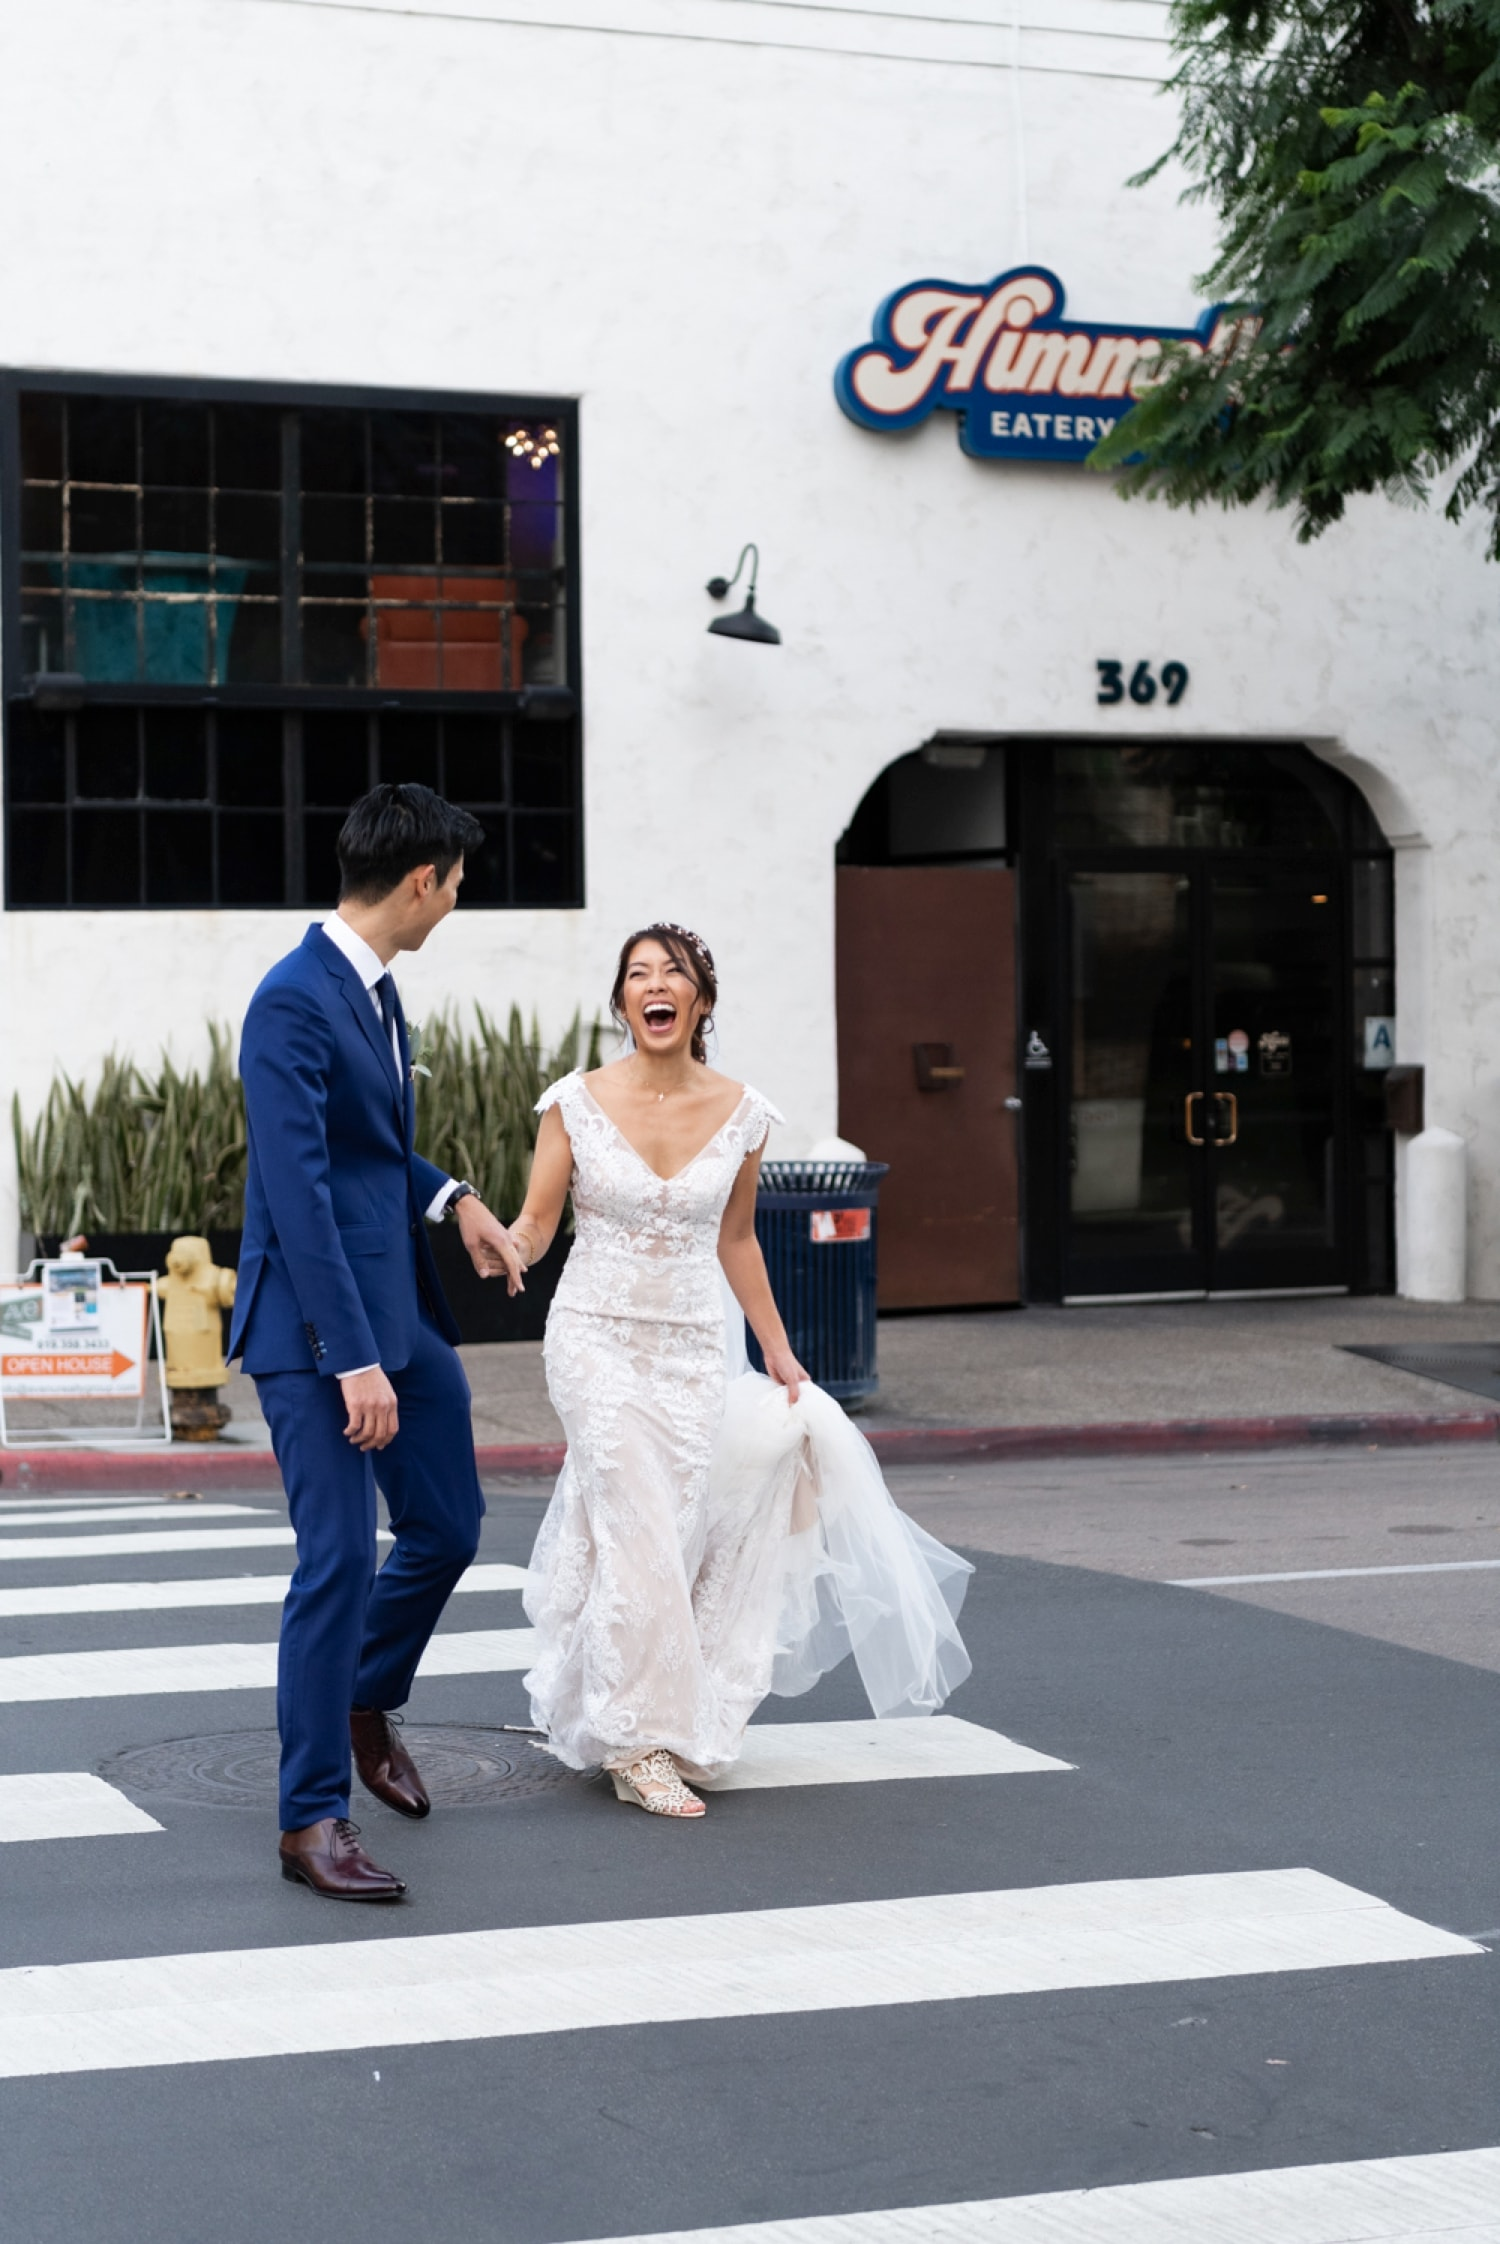 Bride and groom crossing the street in downtown San Diego.